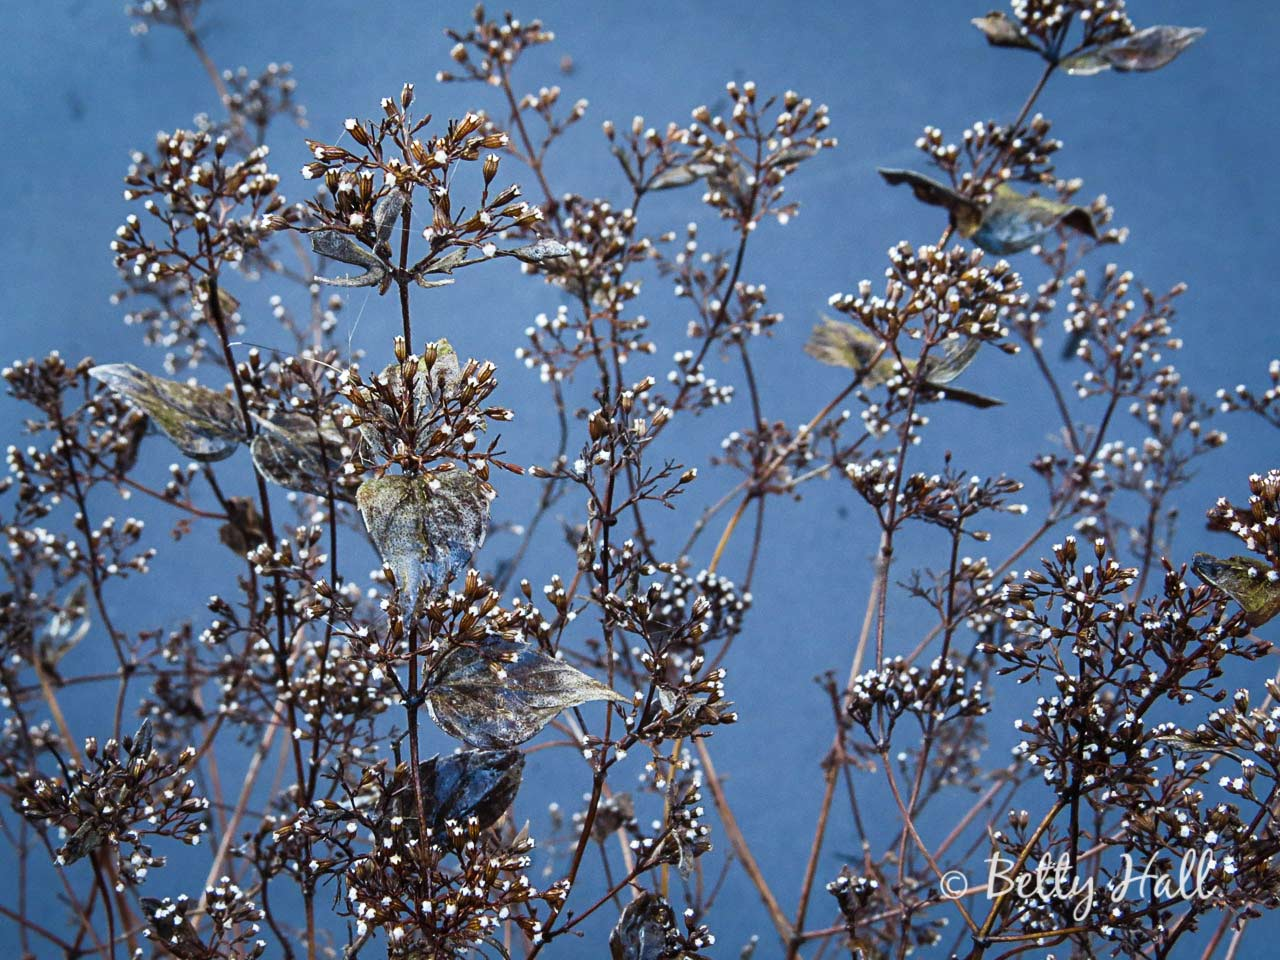 Common dittany seed heads